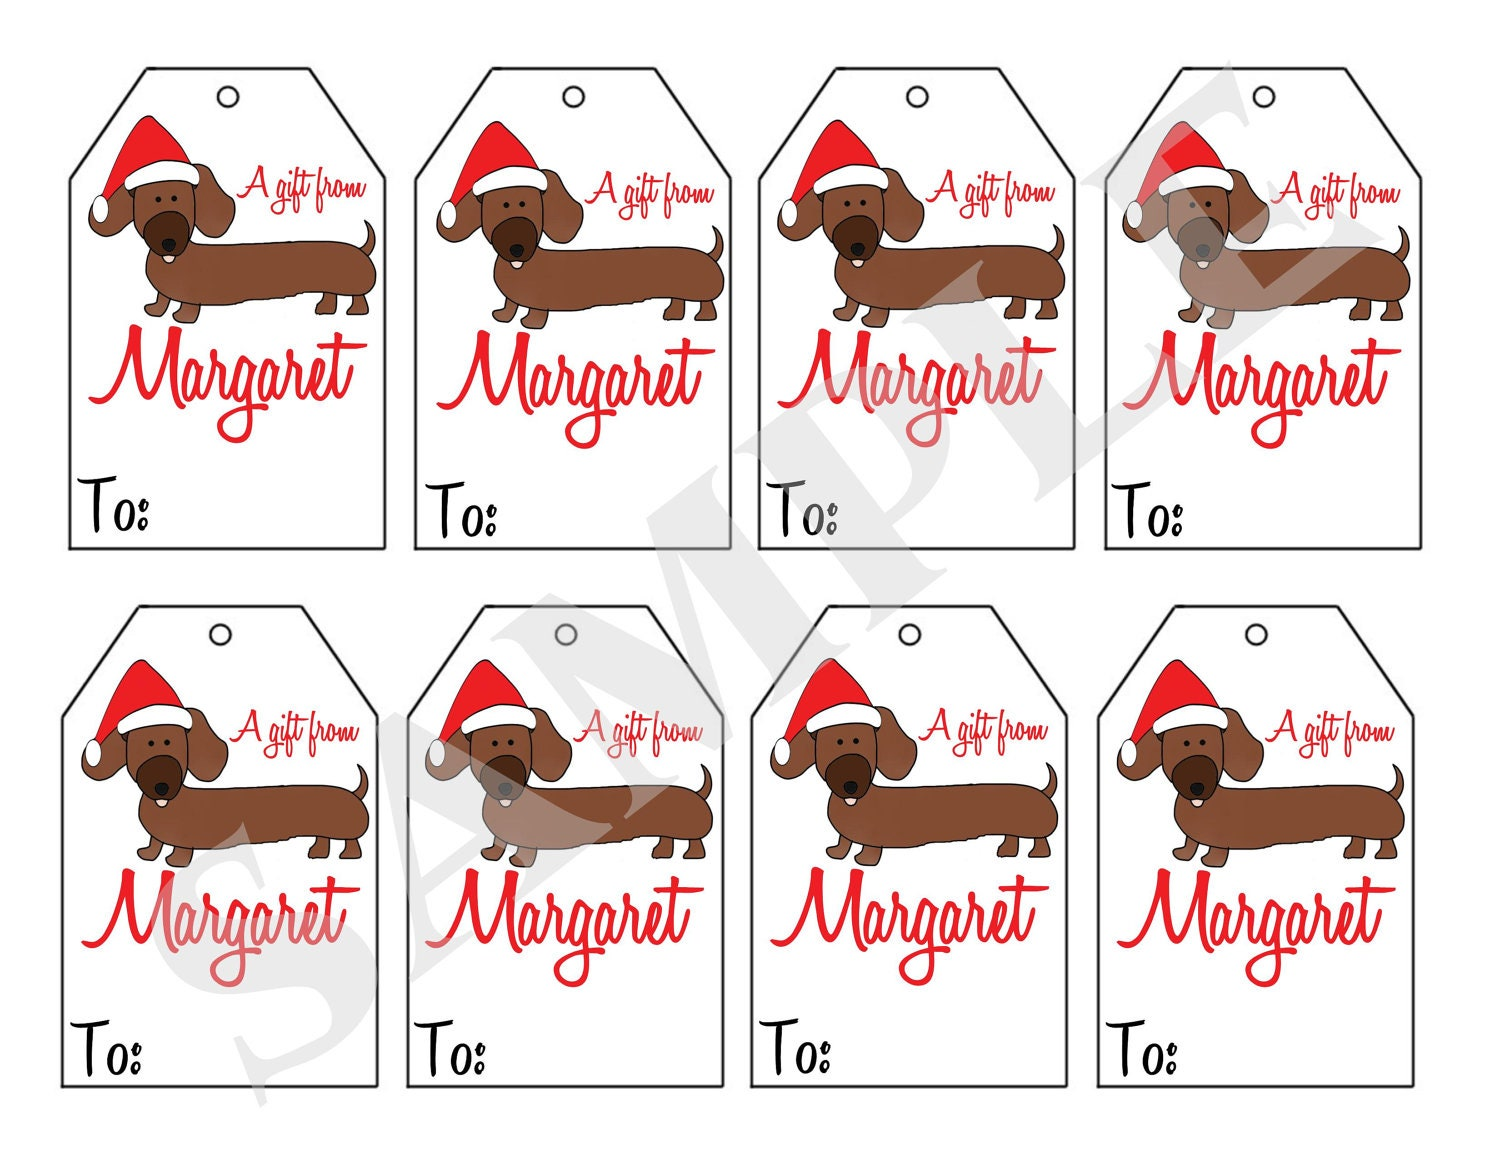 Printable personalized christmas dachshund dog gift tags details printable personalized christmas dachshund dog gift tags dachshund with santa negle